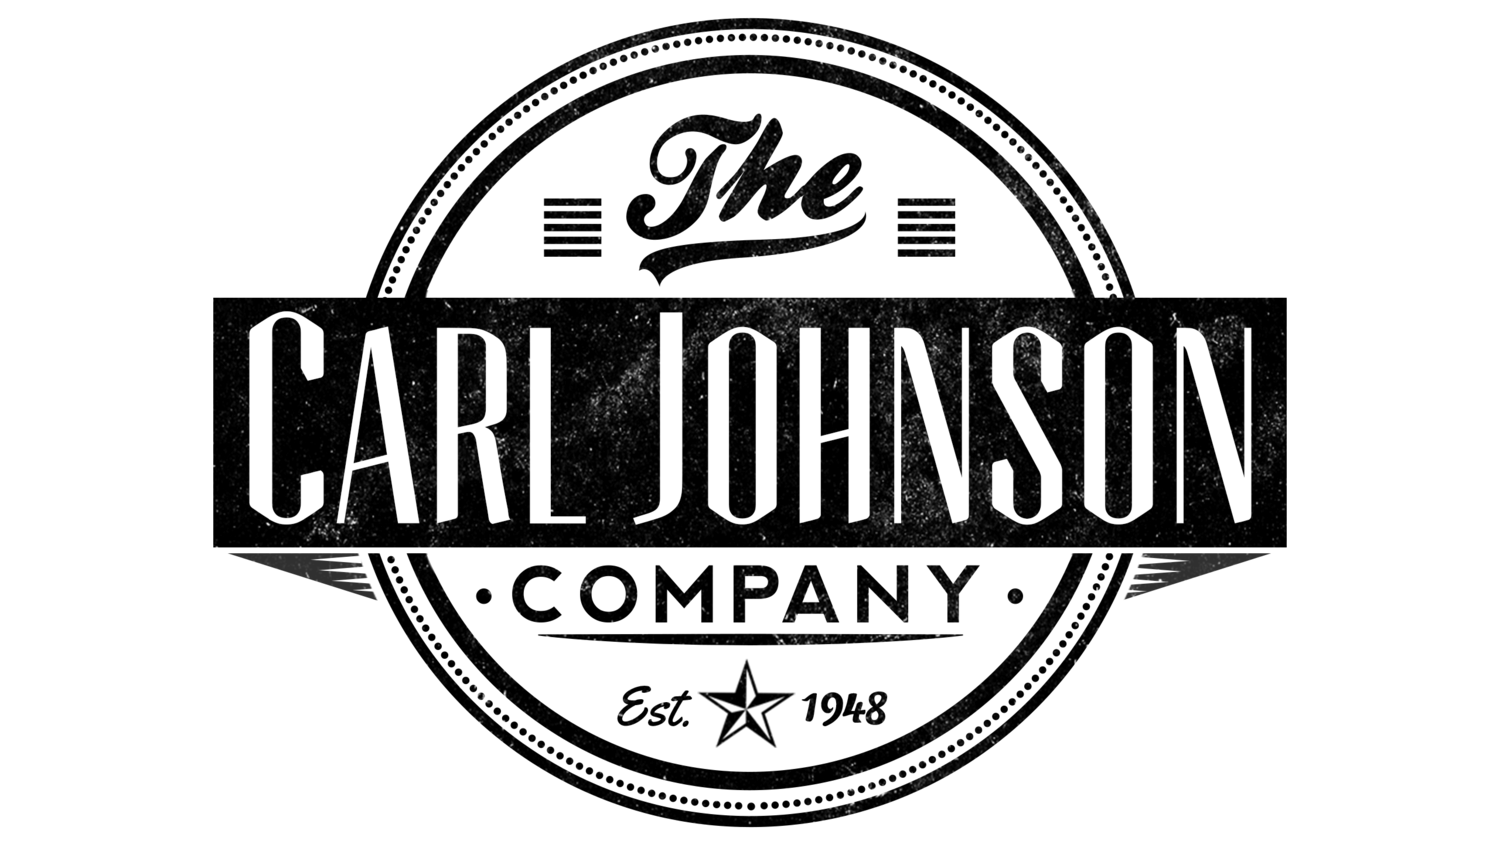 The Carl Johnson Co.